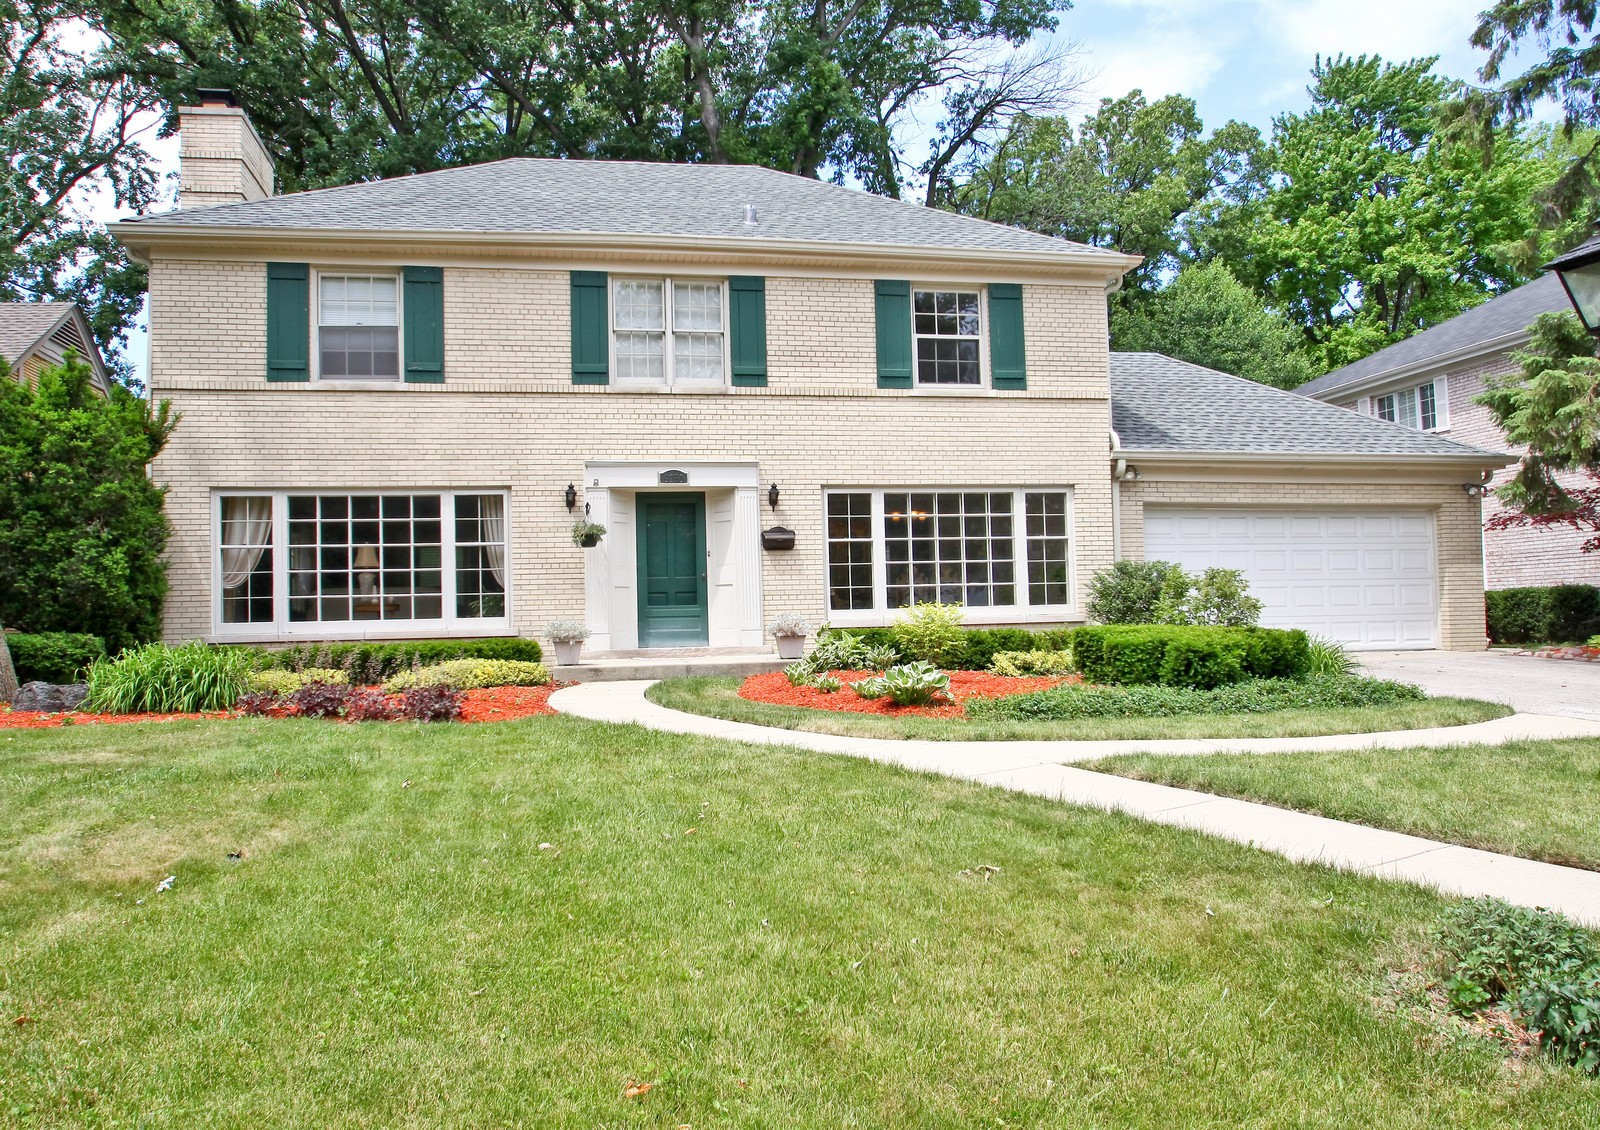 Real Estate Photography - 6750 N Longmeadow Ave, Lincolnwood, IL, 60712 - Front View